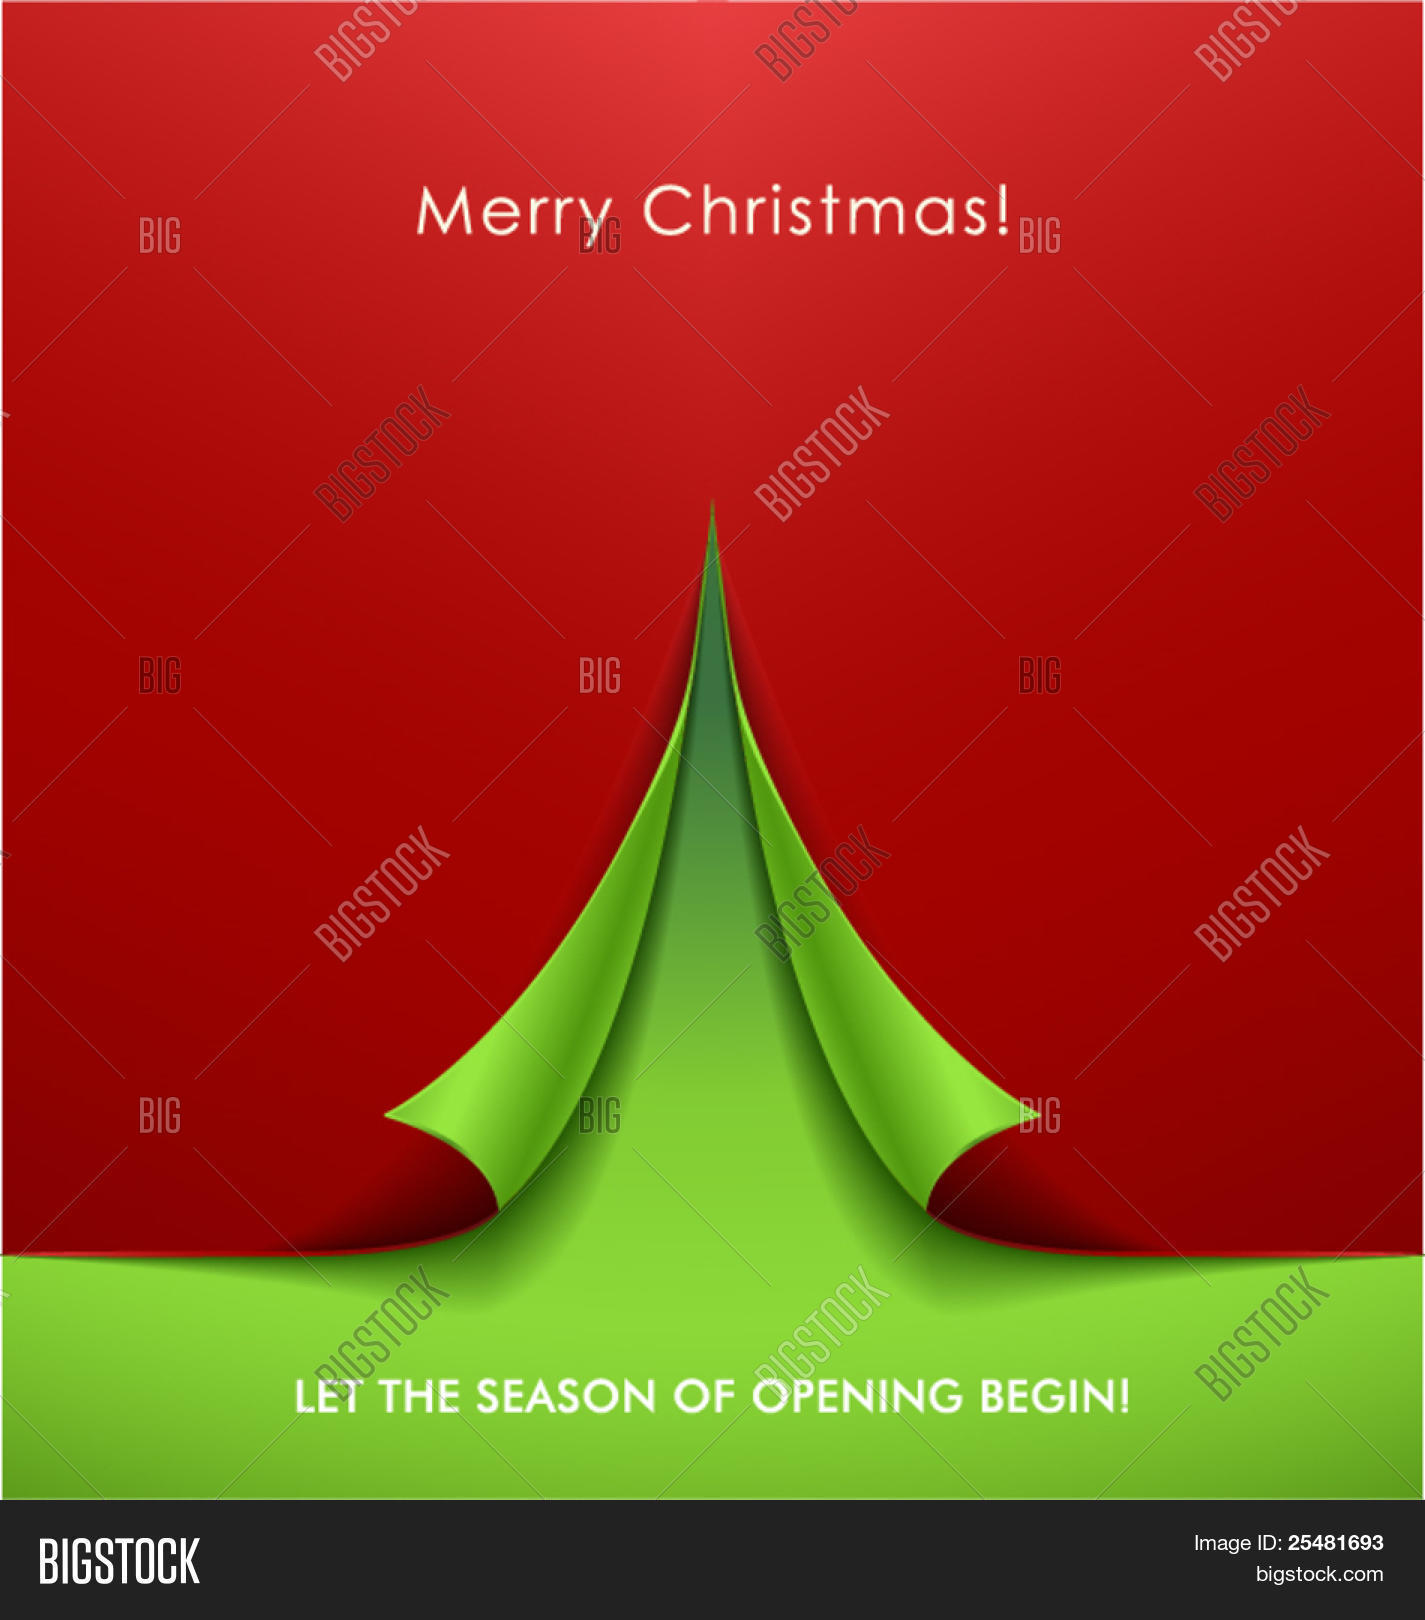 2012,2012 year,background,card,celebrate,celebration,cheerful,christmas,colorful,concept,contrast,corner,creative,curl,design,festive,fir,folded,gift,graphic,green,greeting,happy,happy new year,holiday,idea,illustration,label,merry,merry christmas and happy new year,new,new year,new year celebration,new years,opening,page,page curl,paper,pine,postcard,present,red,ribbon,season,seasonal,shape,sticker,stylized,surprise,tree,up,vector,wallpaper,xmas,year,yule